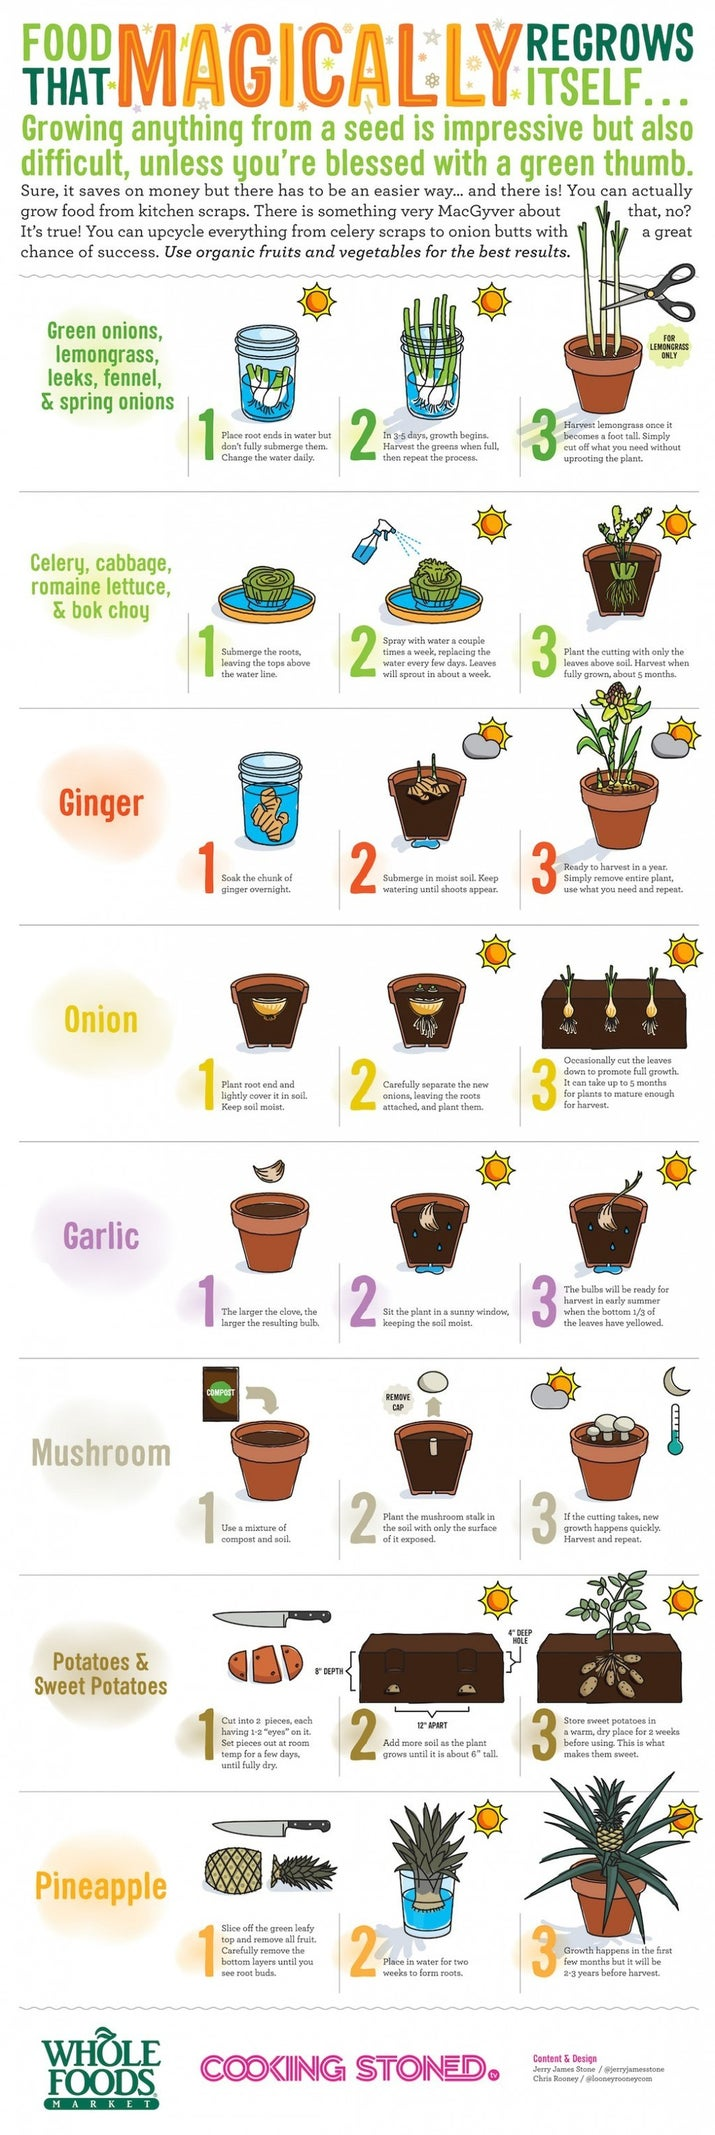 Save some money: Here's a list of food that ~magically~ regrows itself.